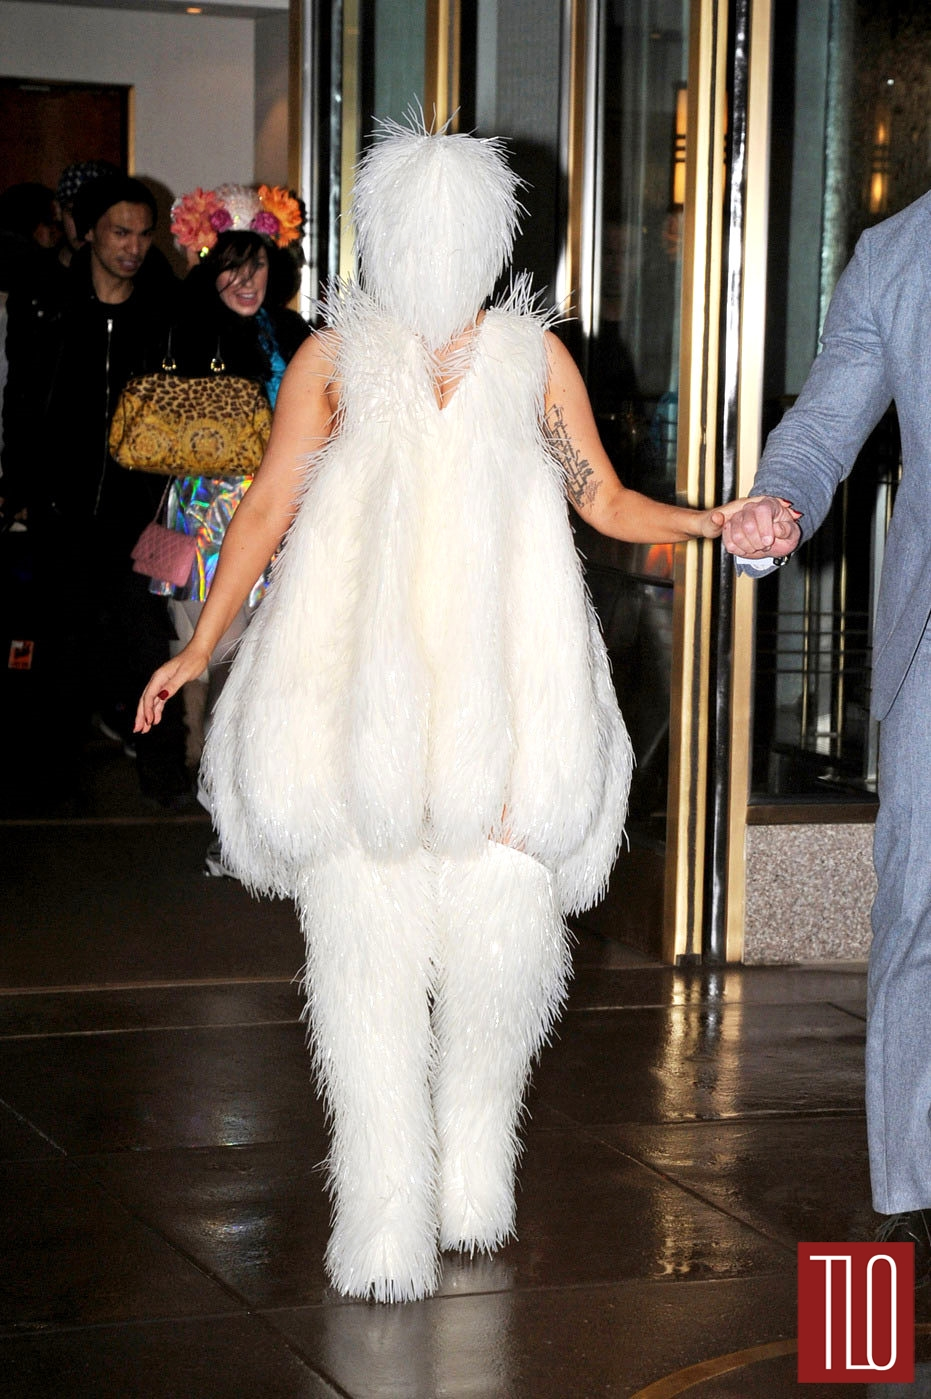 Lady-Gaga-GOTS-WFO-NYC-Tom-Lorenzo-Site-TLO (1)